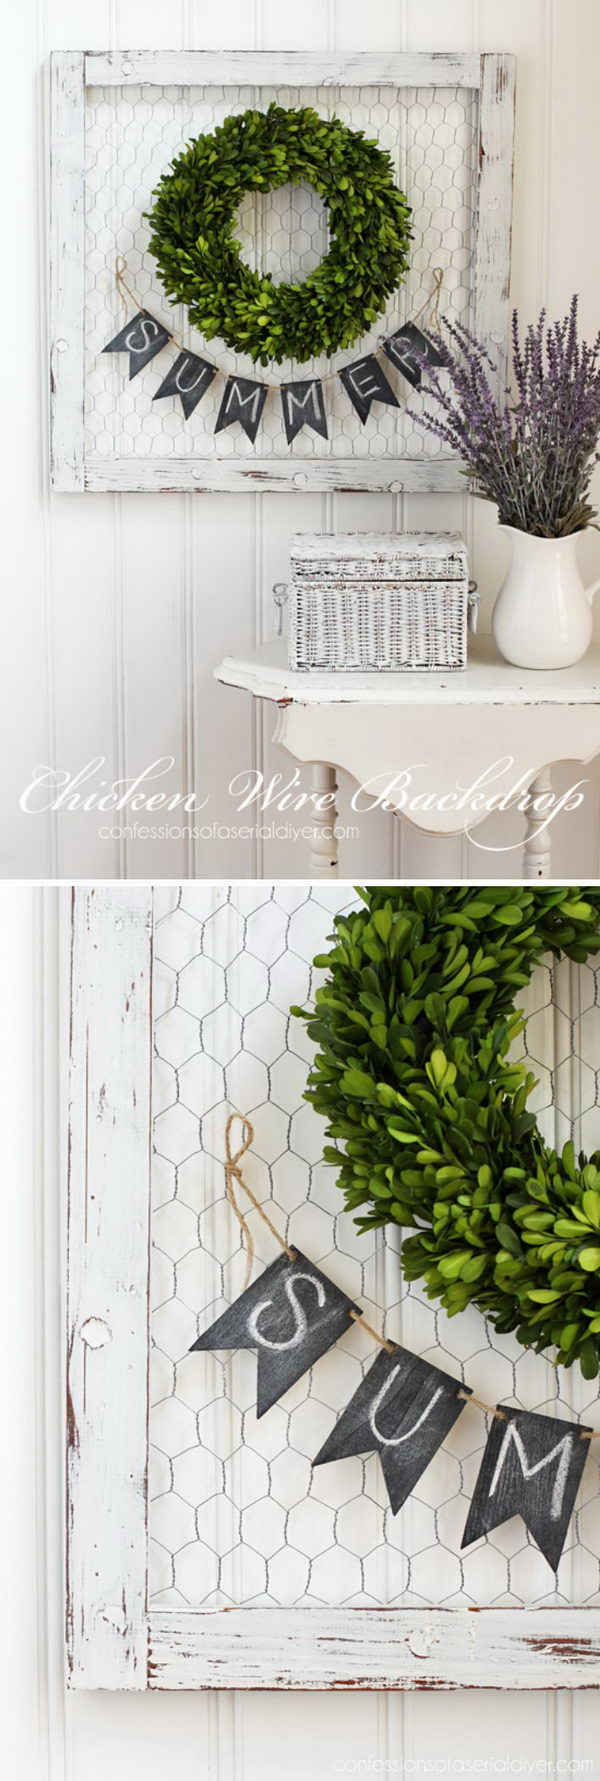 A Frame of Chicken Wire Makes a Perfect Backdrop for a Wreath.